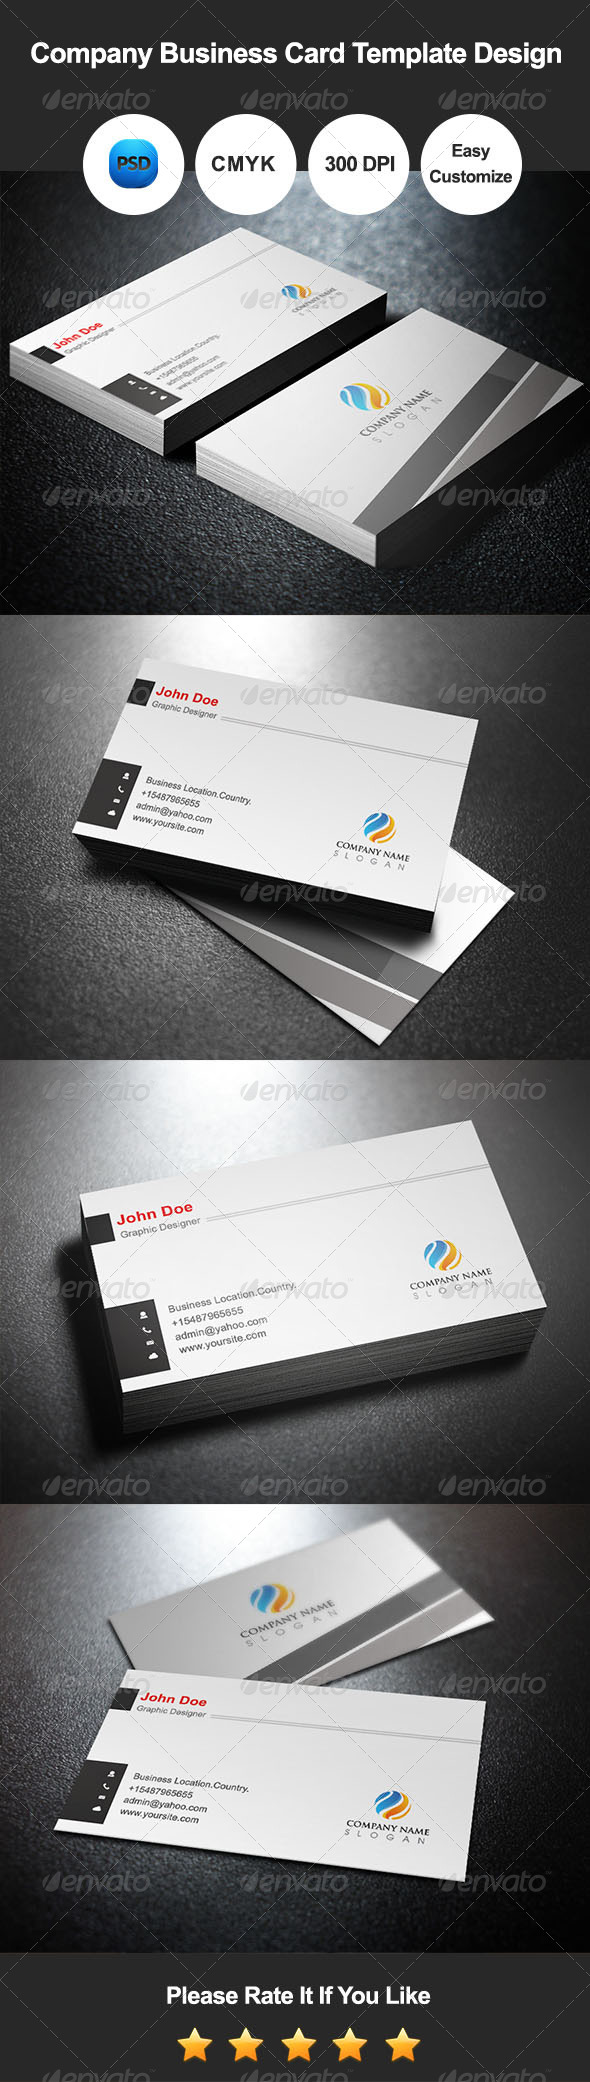 GraphicRiver Company Business Card Template Design 7500198